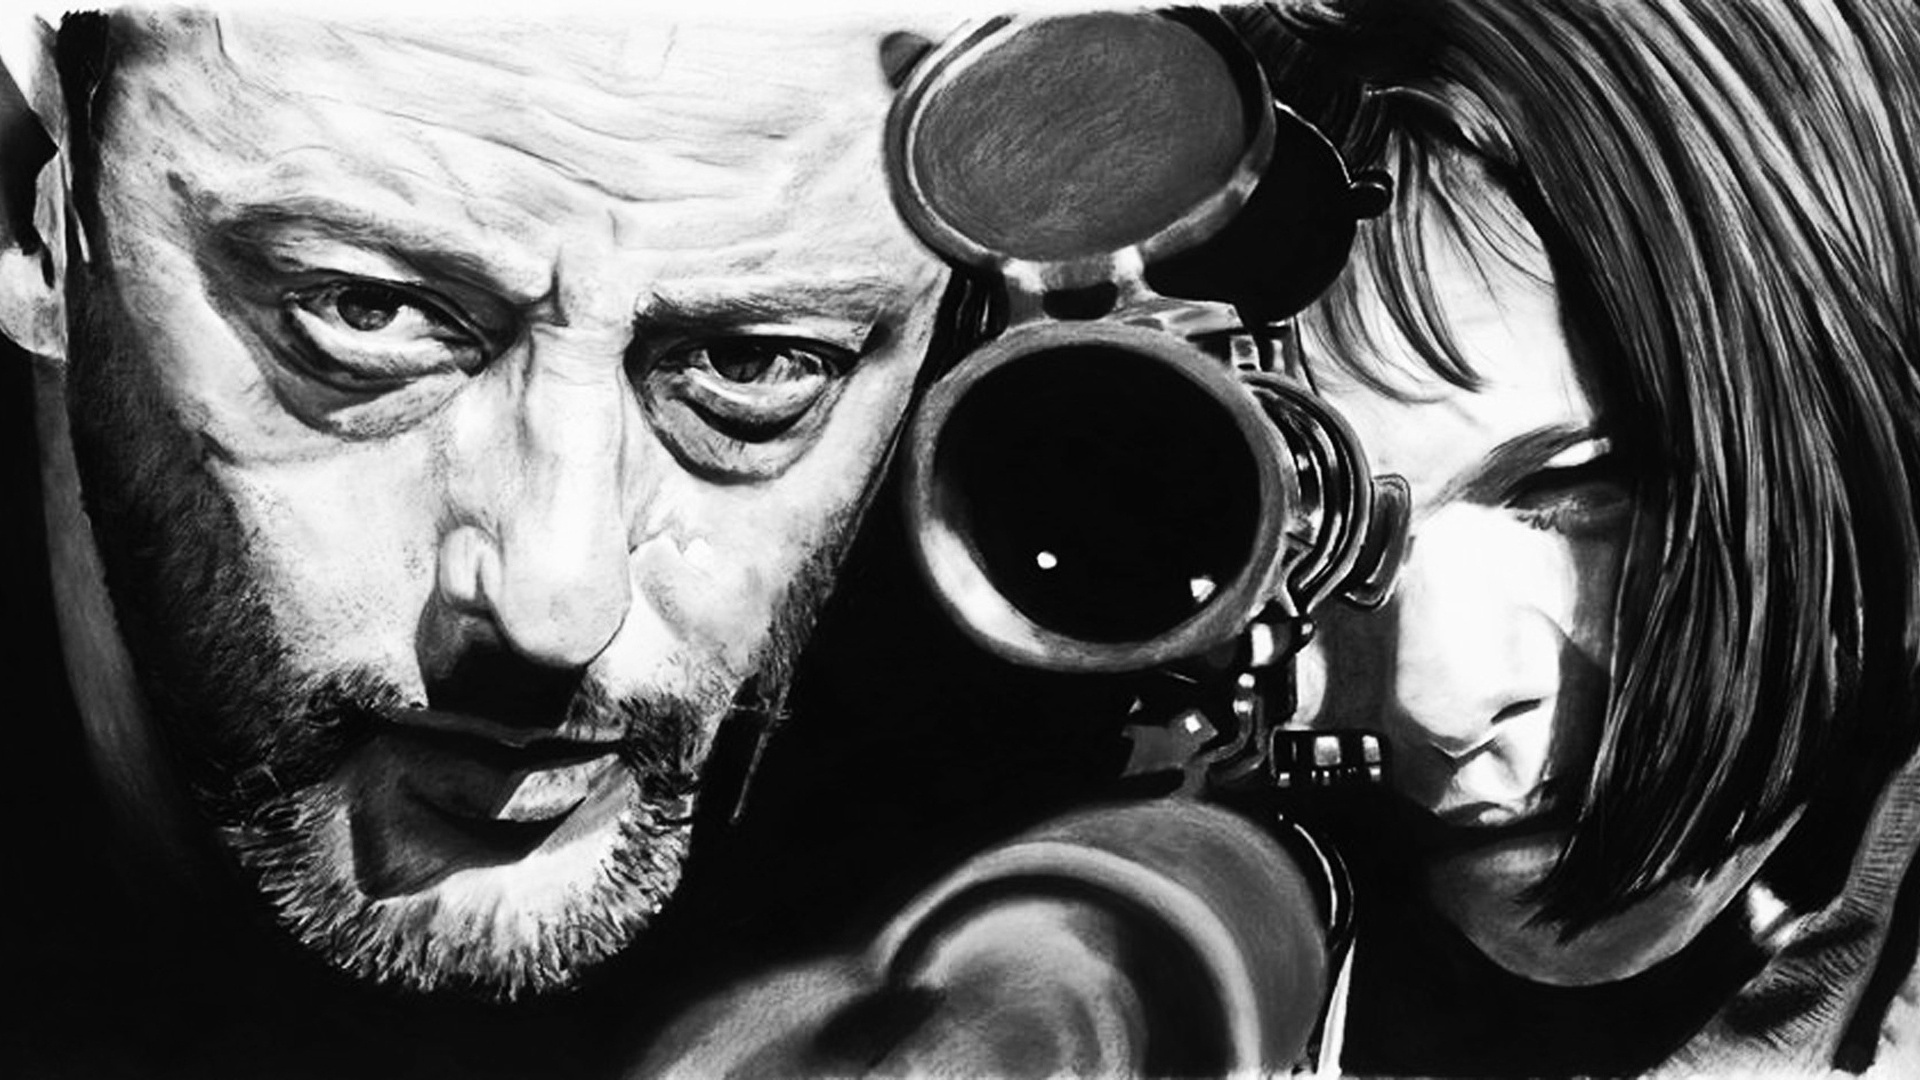 https://jackflacco.files.wordpress.com/2013/01/leon-the-professional.jpg